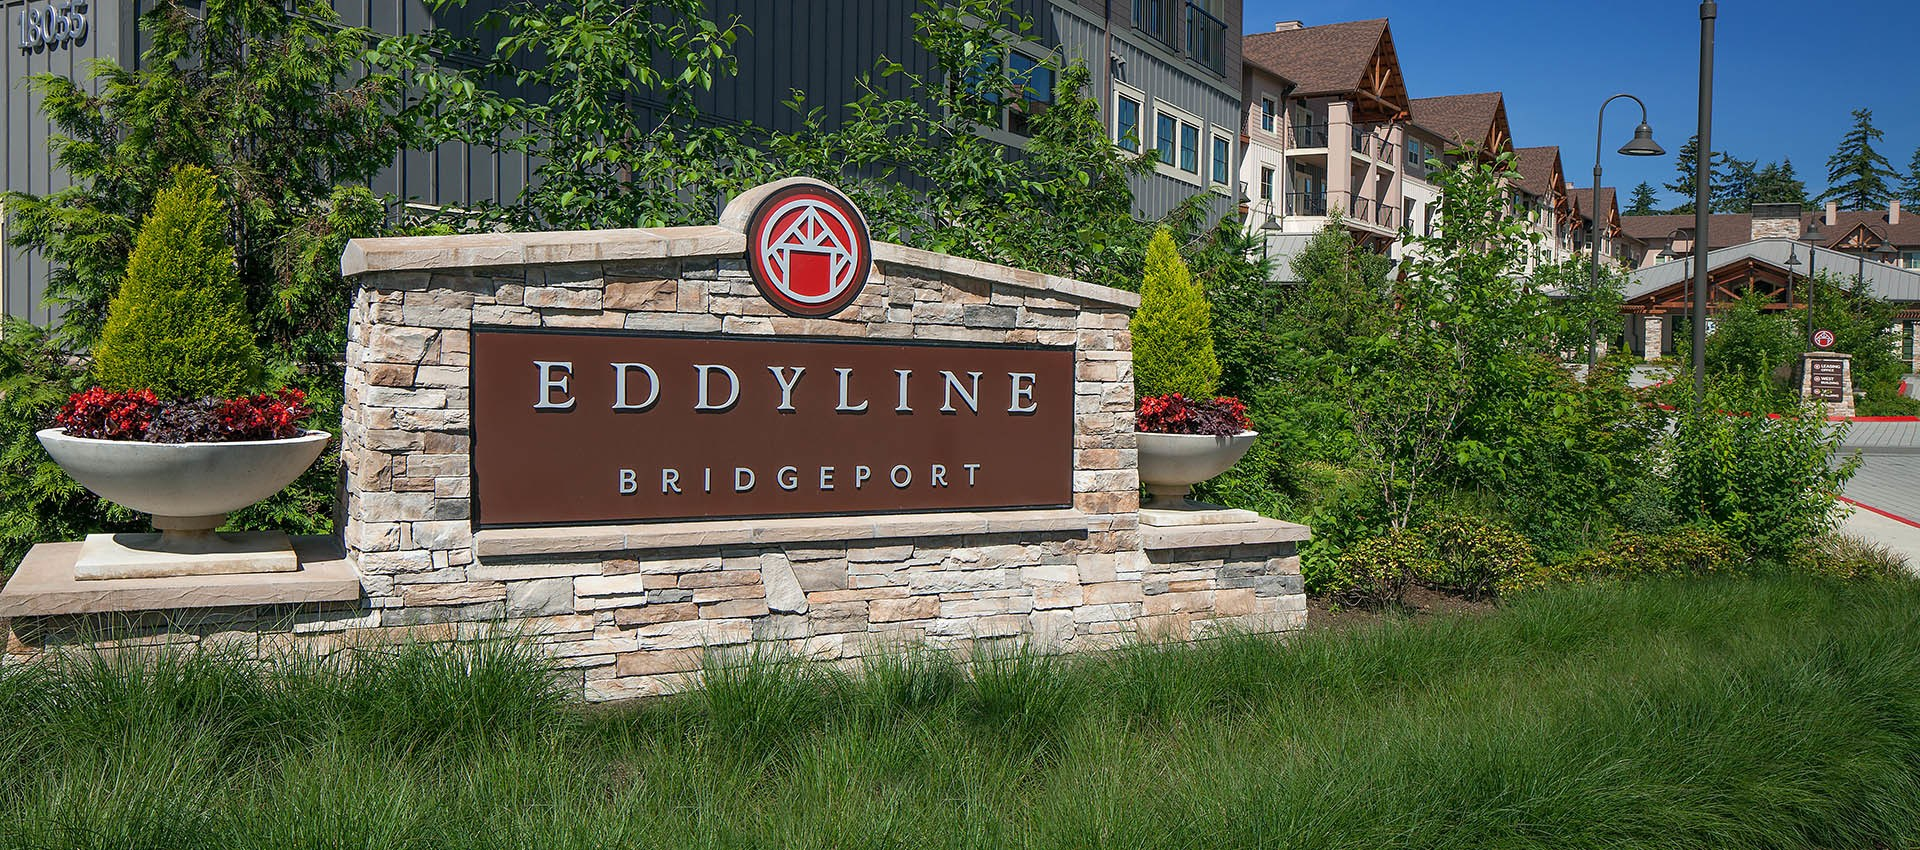 Signage at Eddyline at Bridgeport in Portland, OR